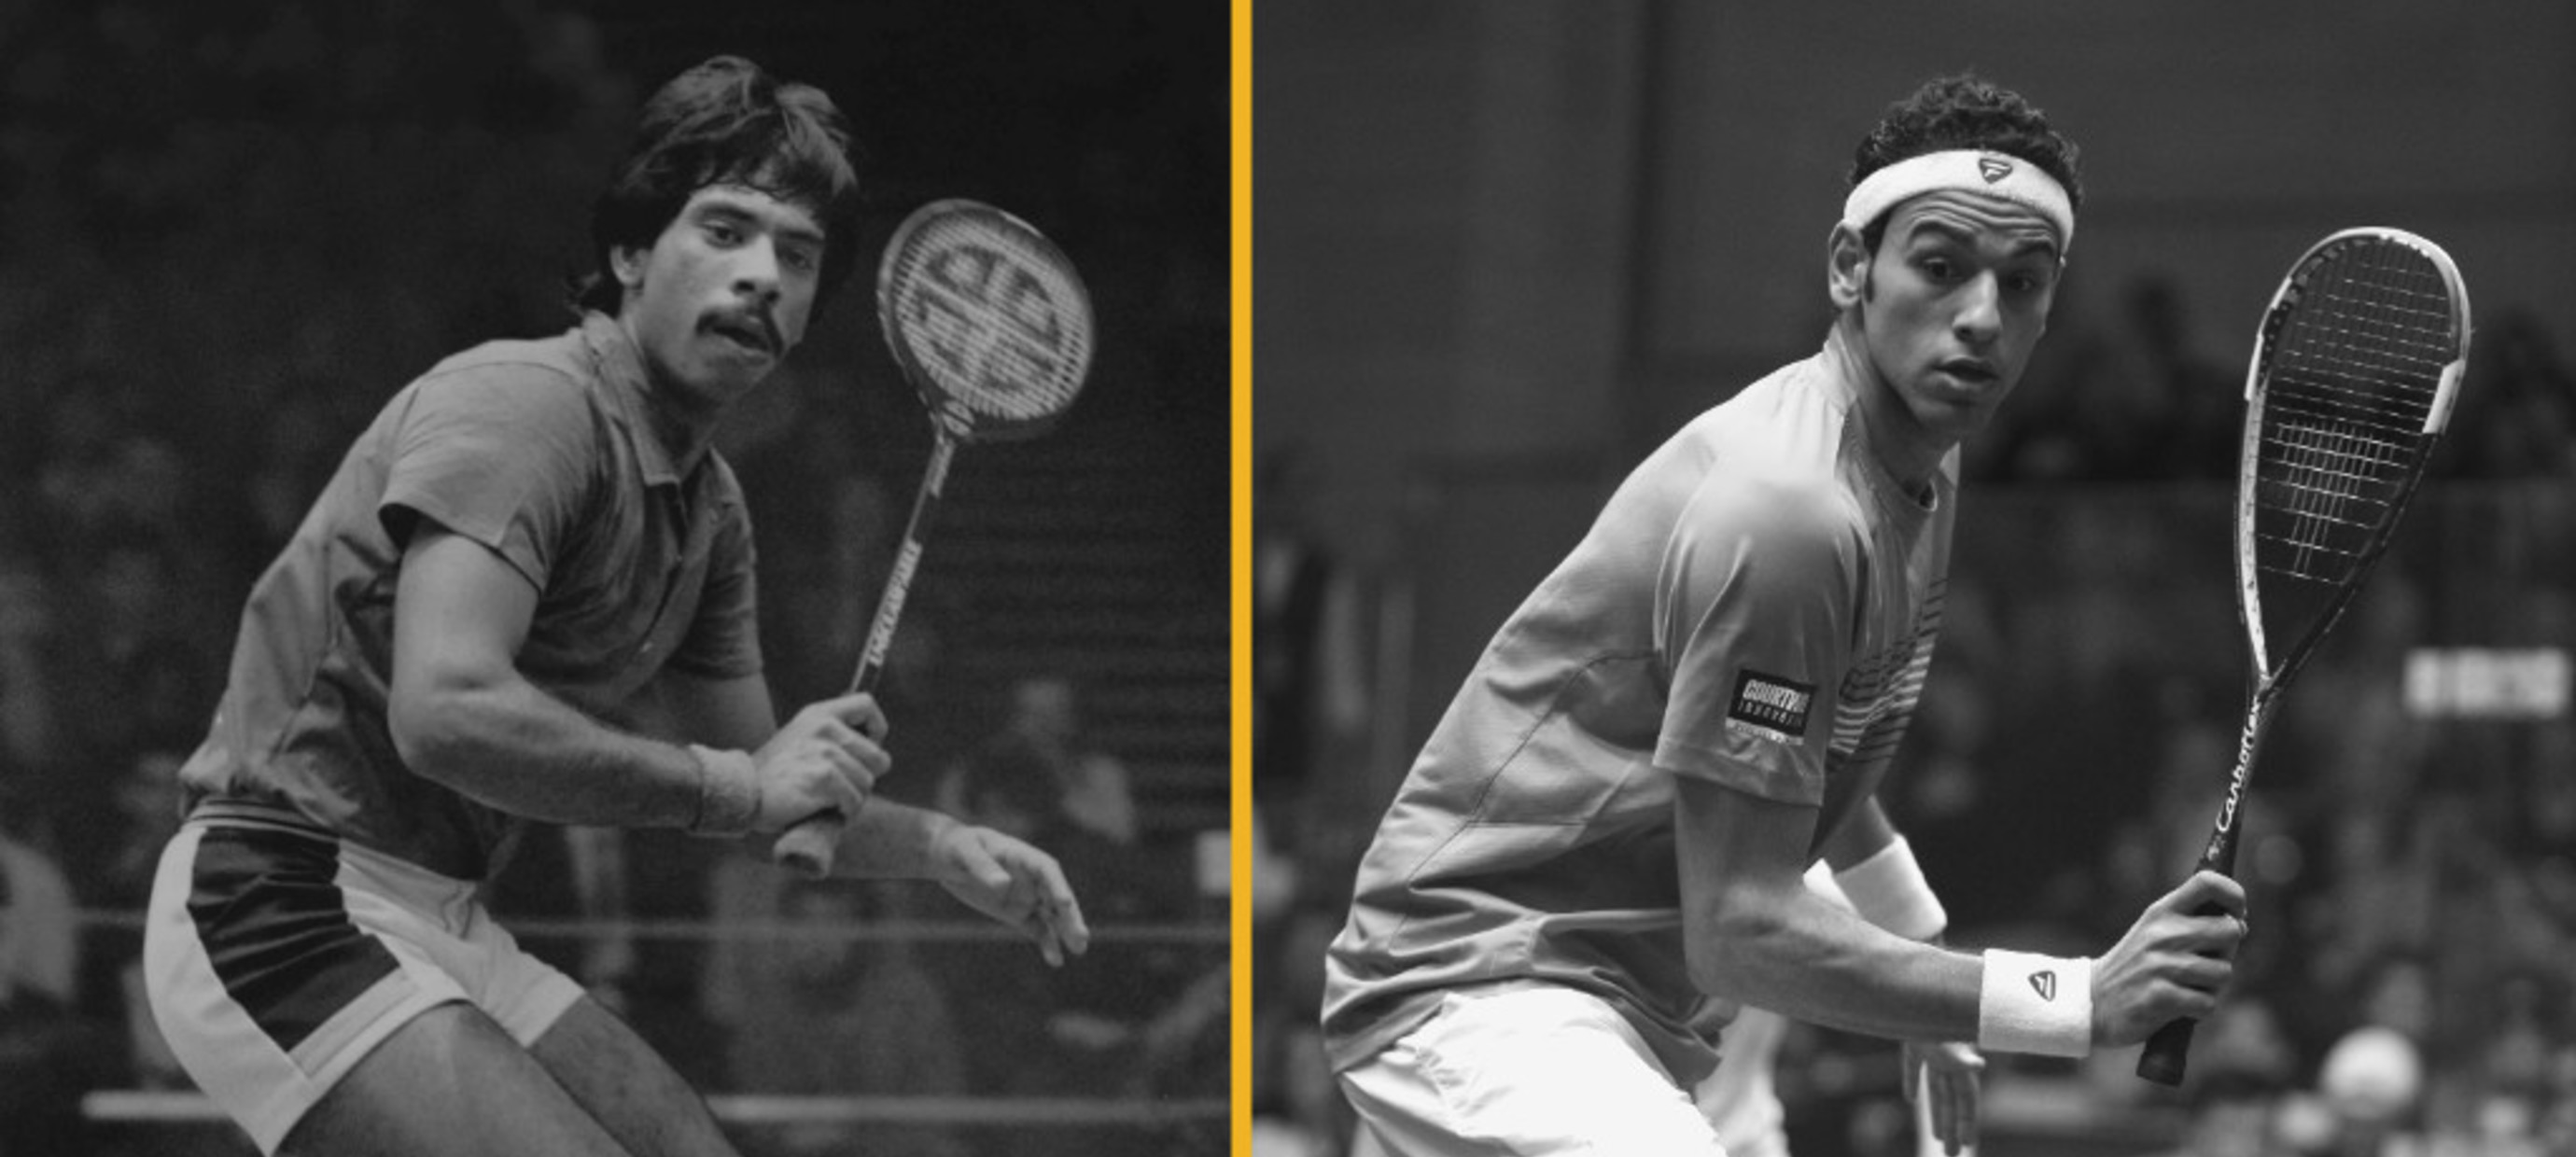 From wood to graphite: the evolution of squash rackets